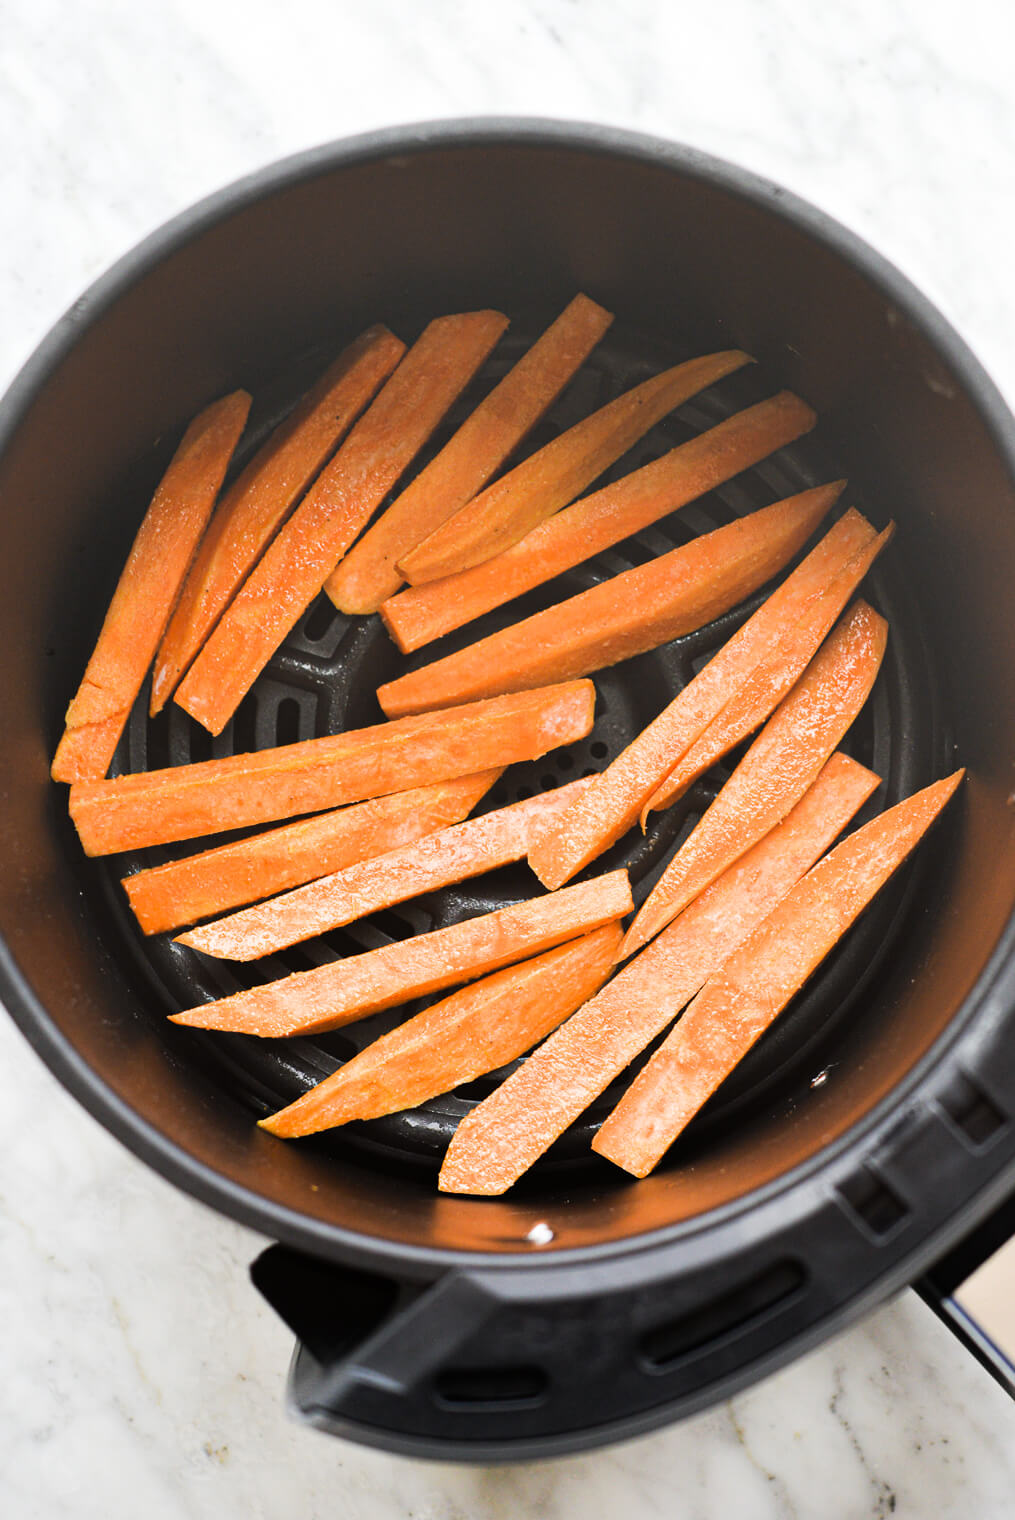 raw sweet potato fries in the basket of an air fryer